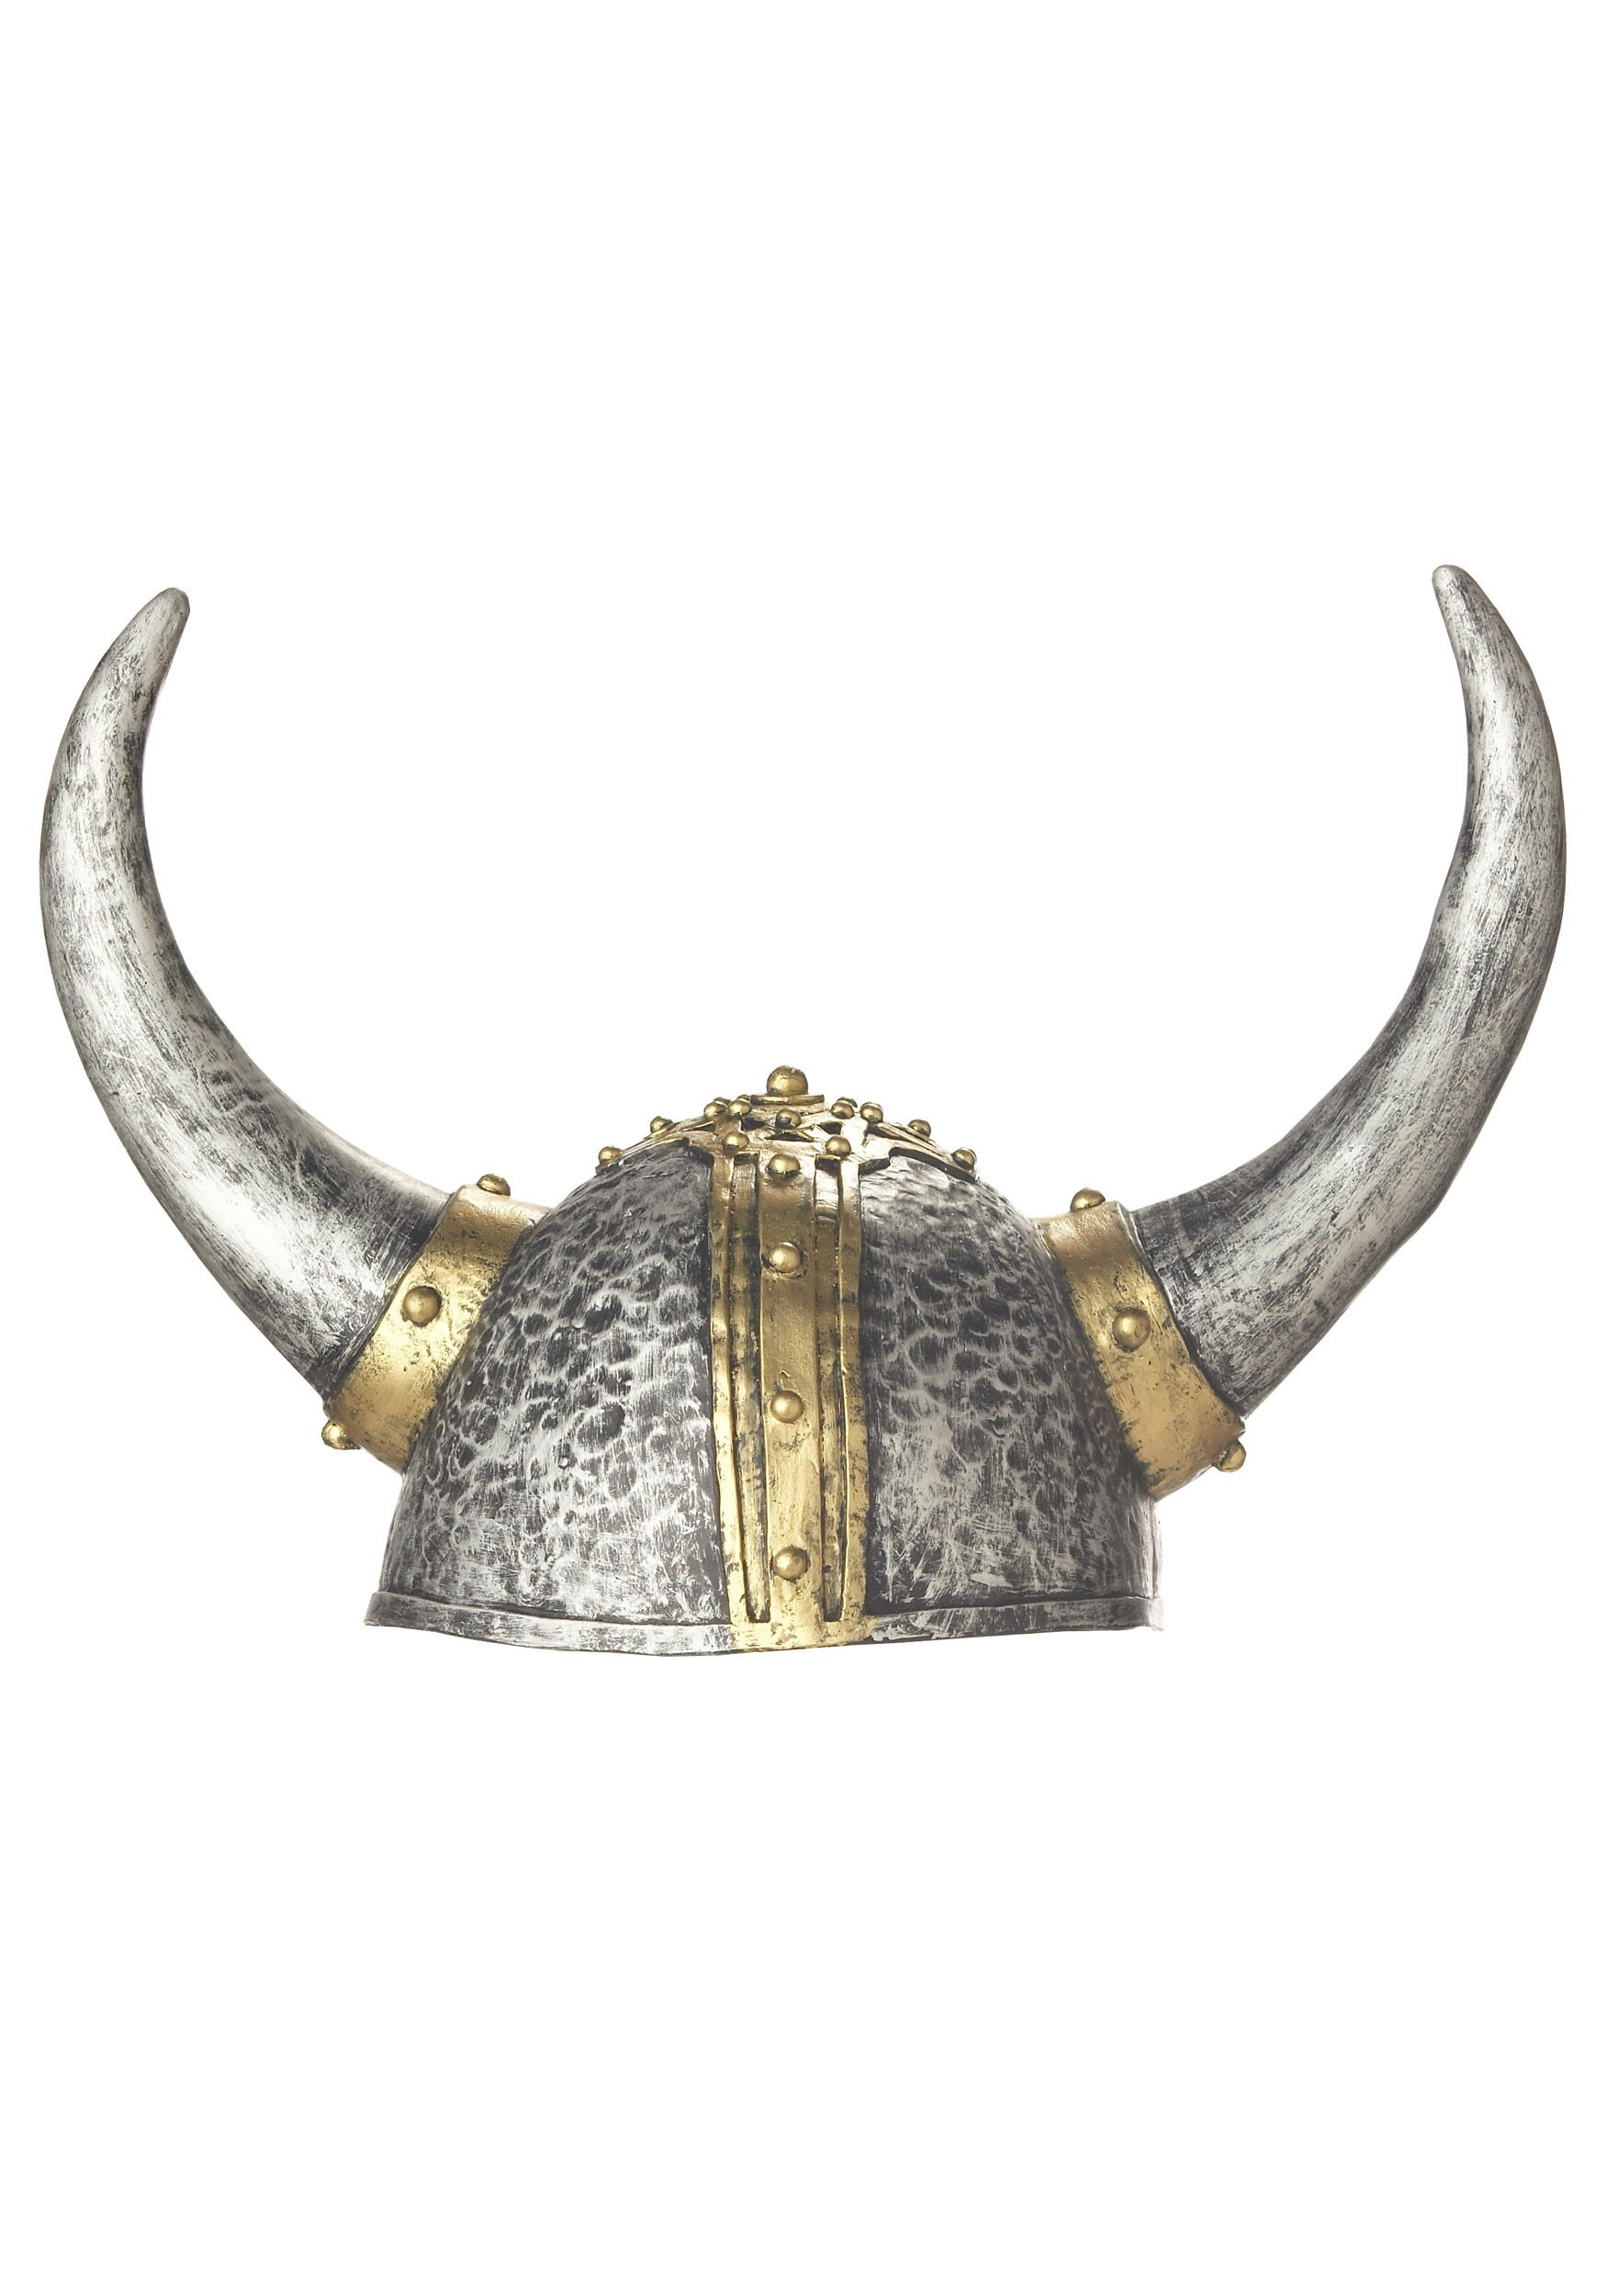 Uncategorized Viking Masks viking helmet